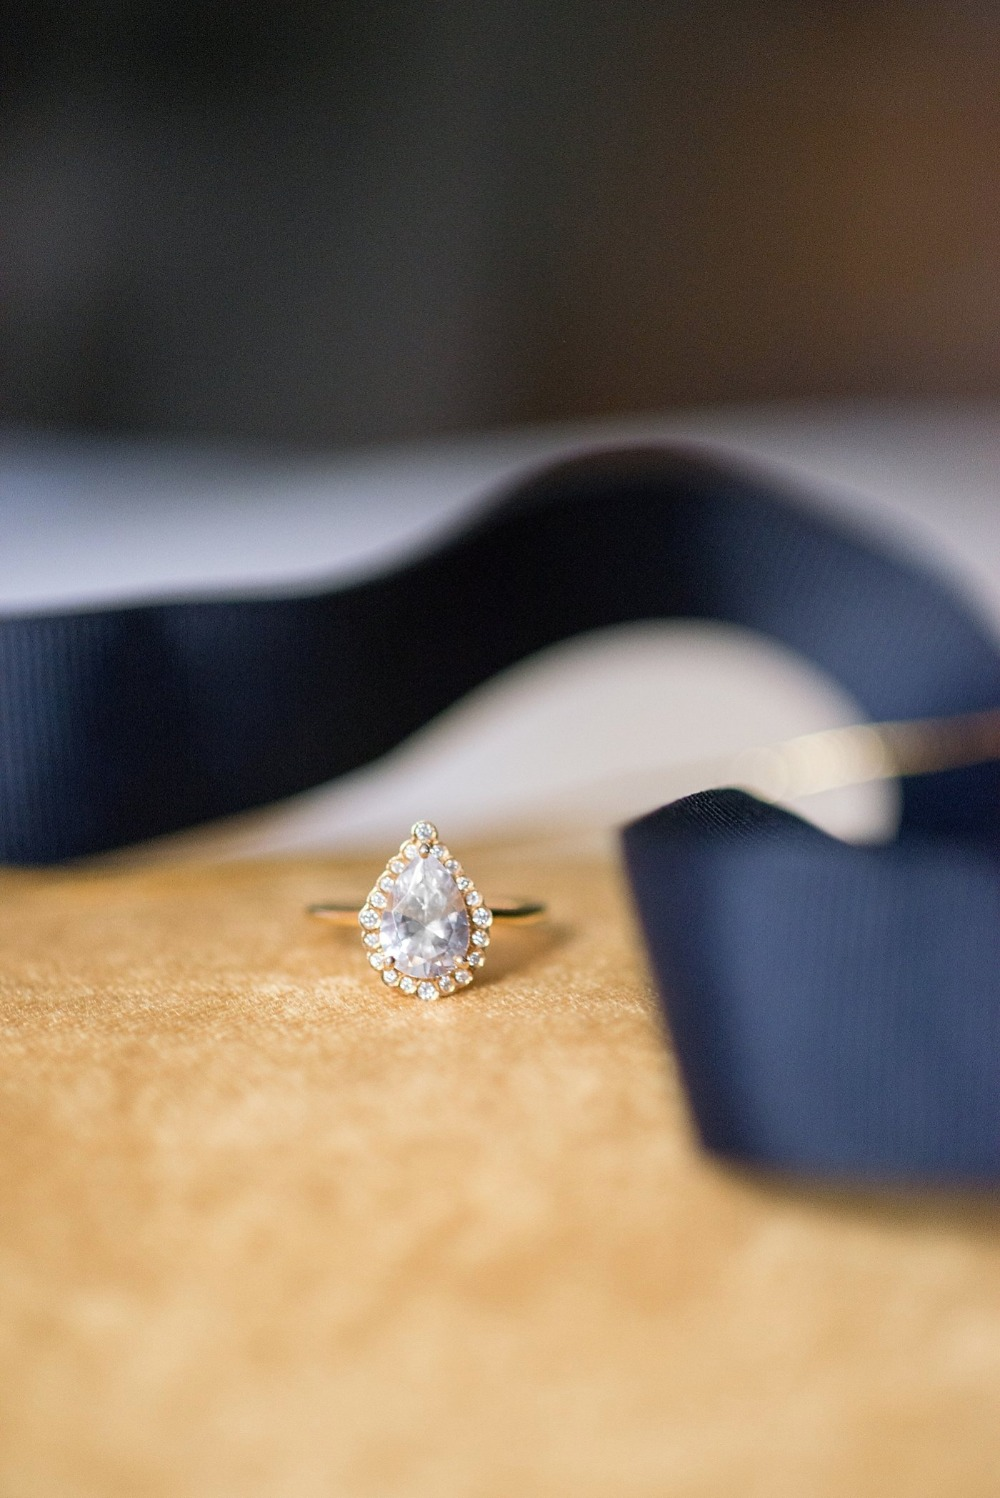 Pear shaped diamond wedding ring